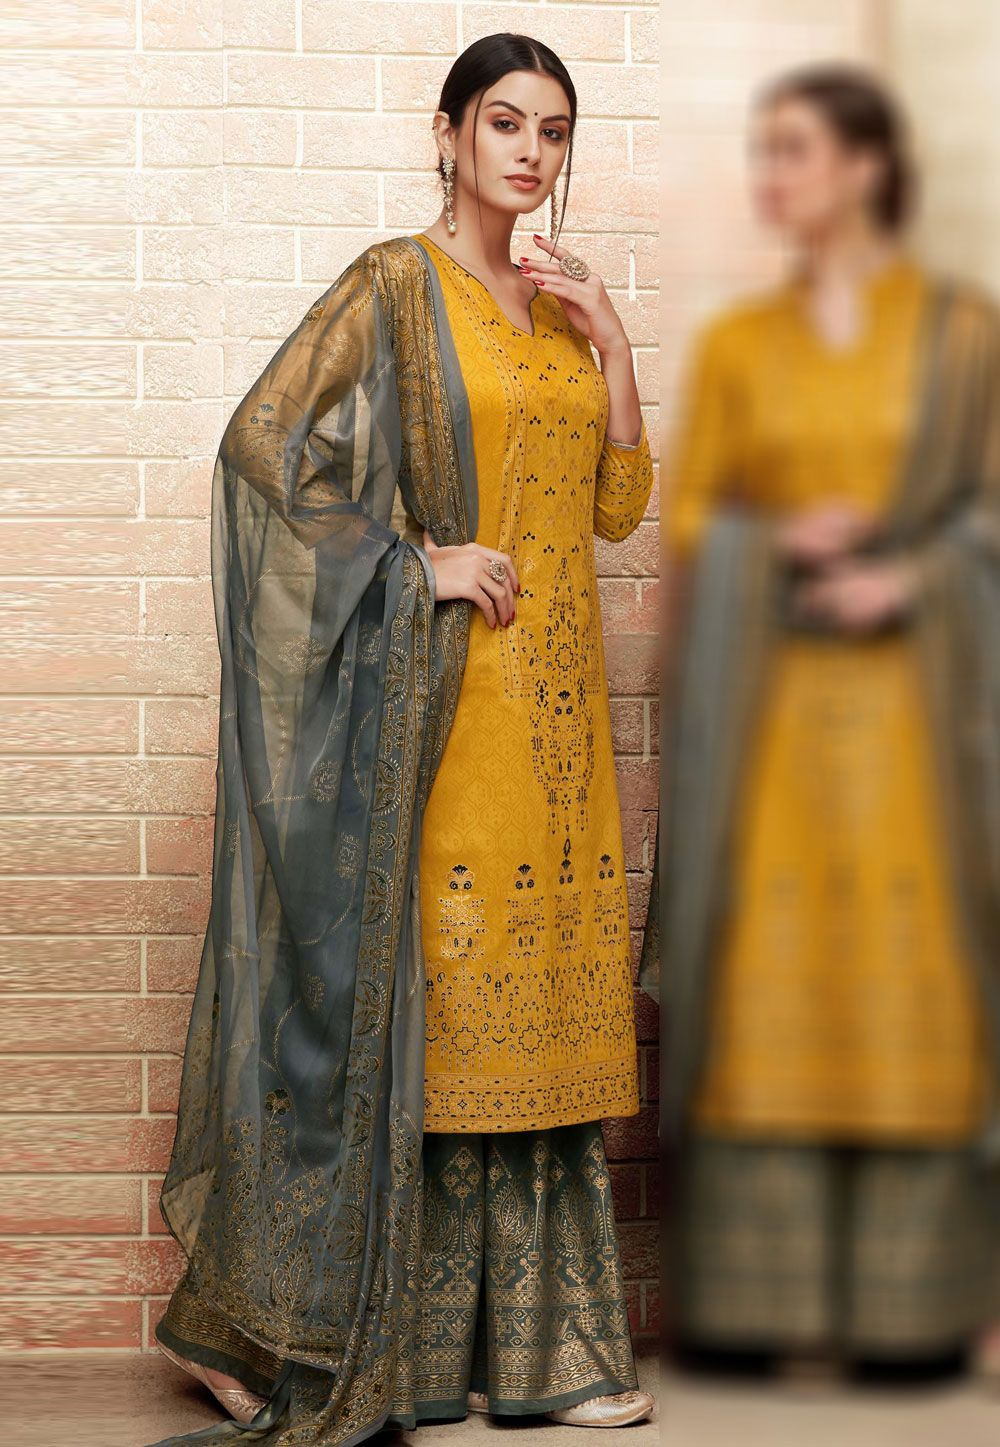 812af5a174c9 Buy Yellow Silk Sharara Suit 163311 online at lowest price from huge  collection of salwar kameez at Indianclothstore.com.